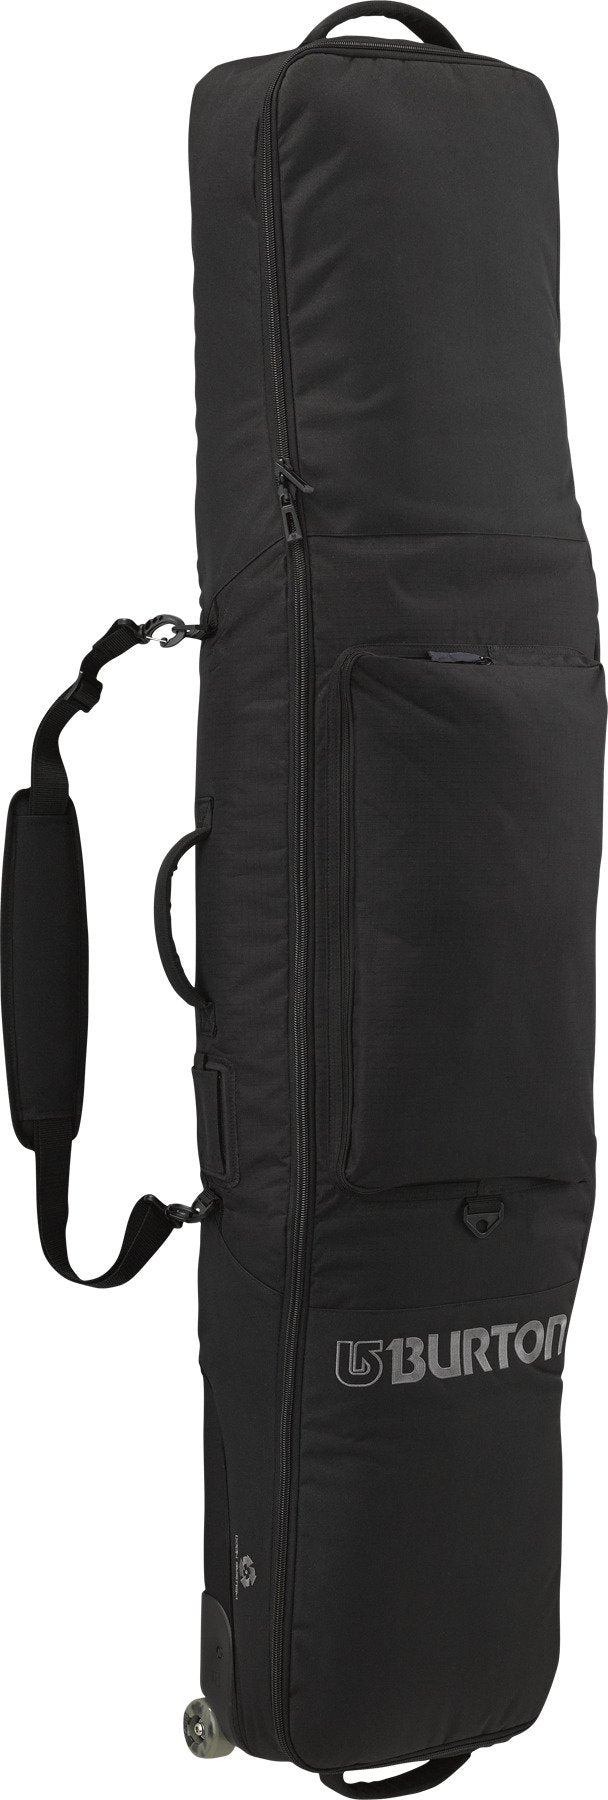 BURTON Wheelie Gig Snowboard Bag True Black